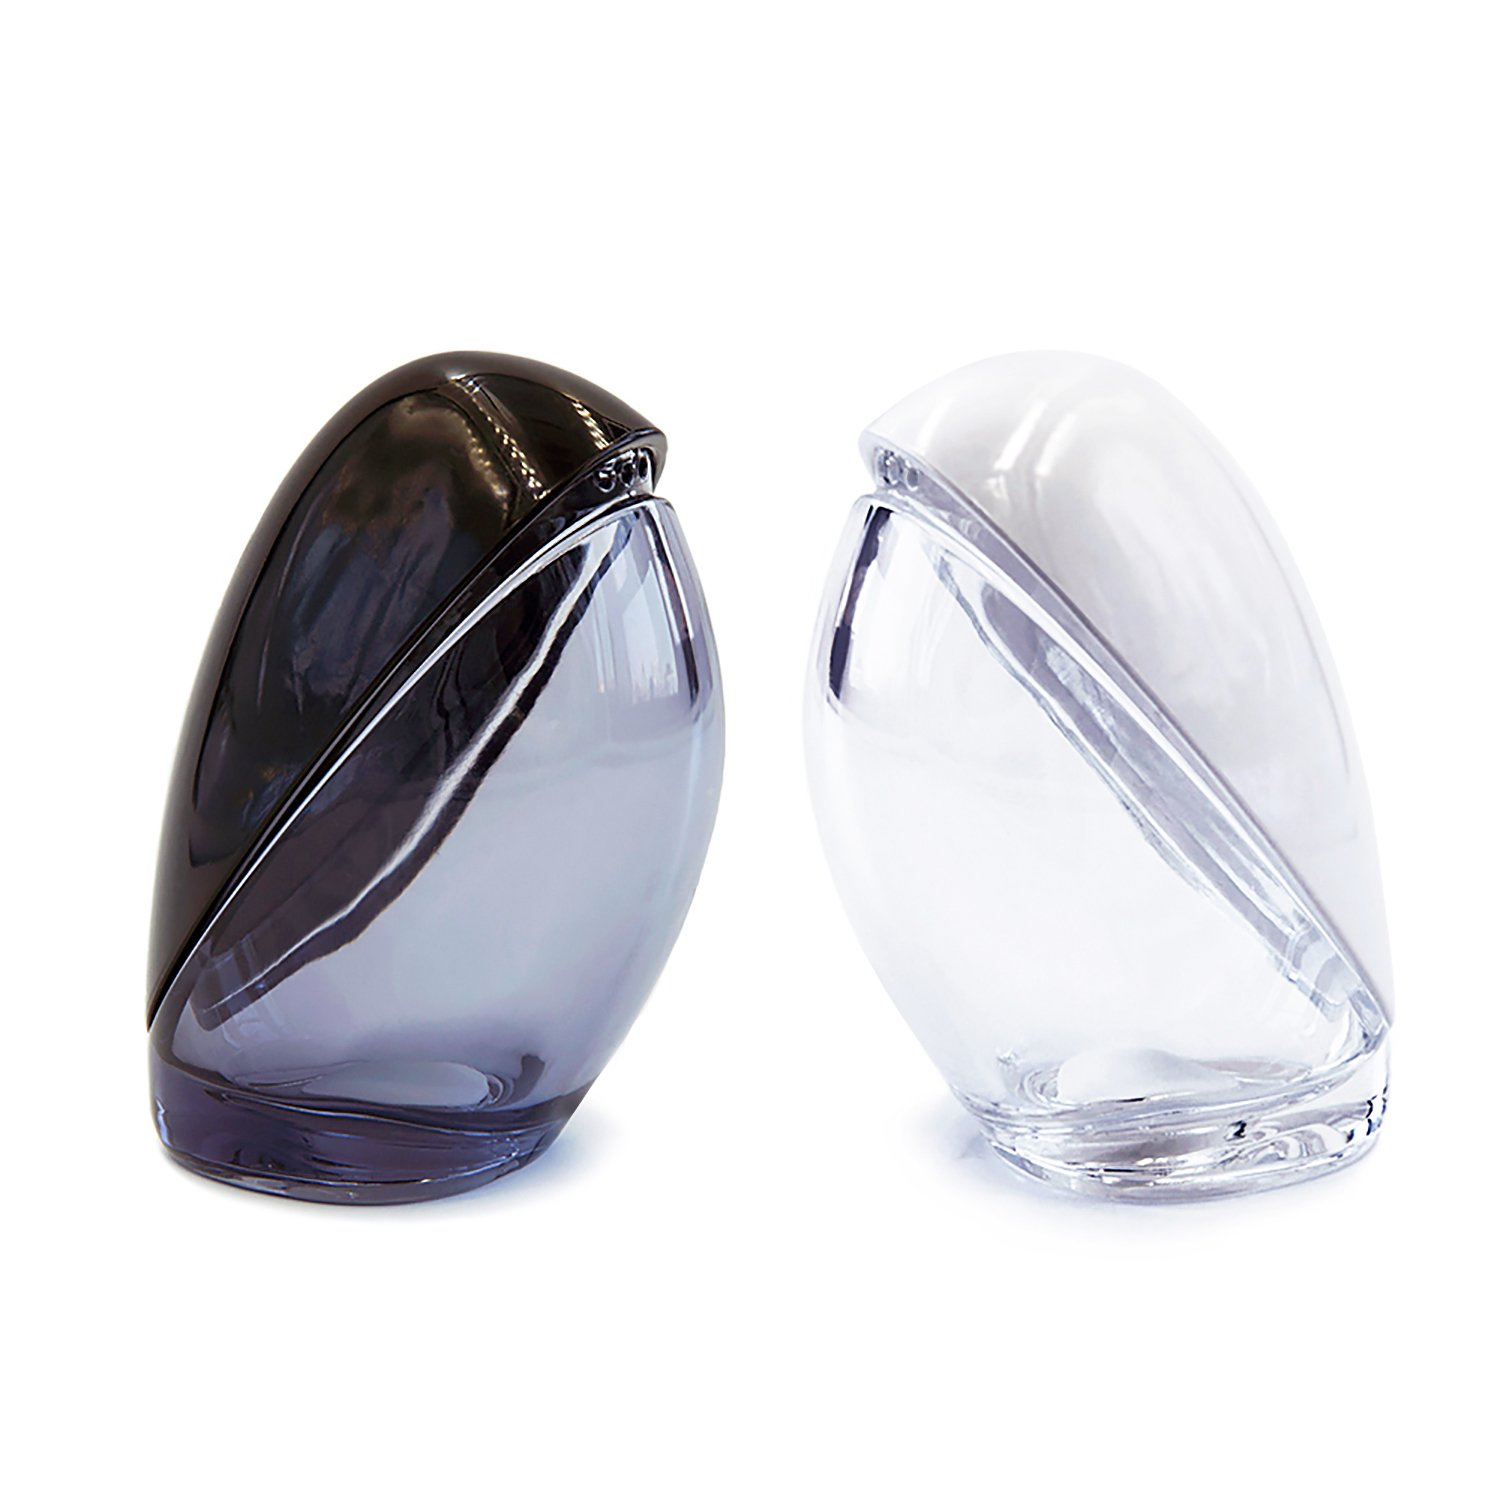 Briiith Salt and Pepper Shakers set-Black and White